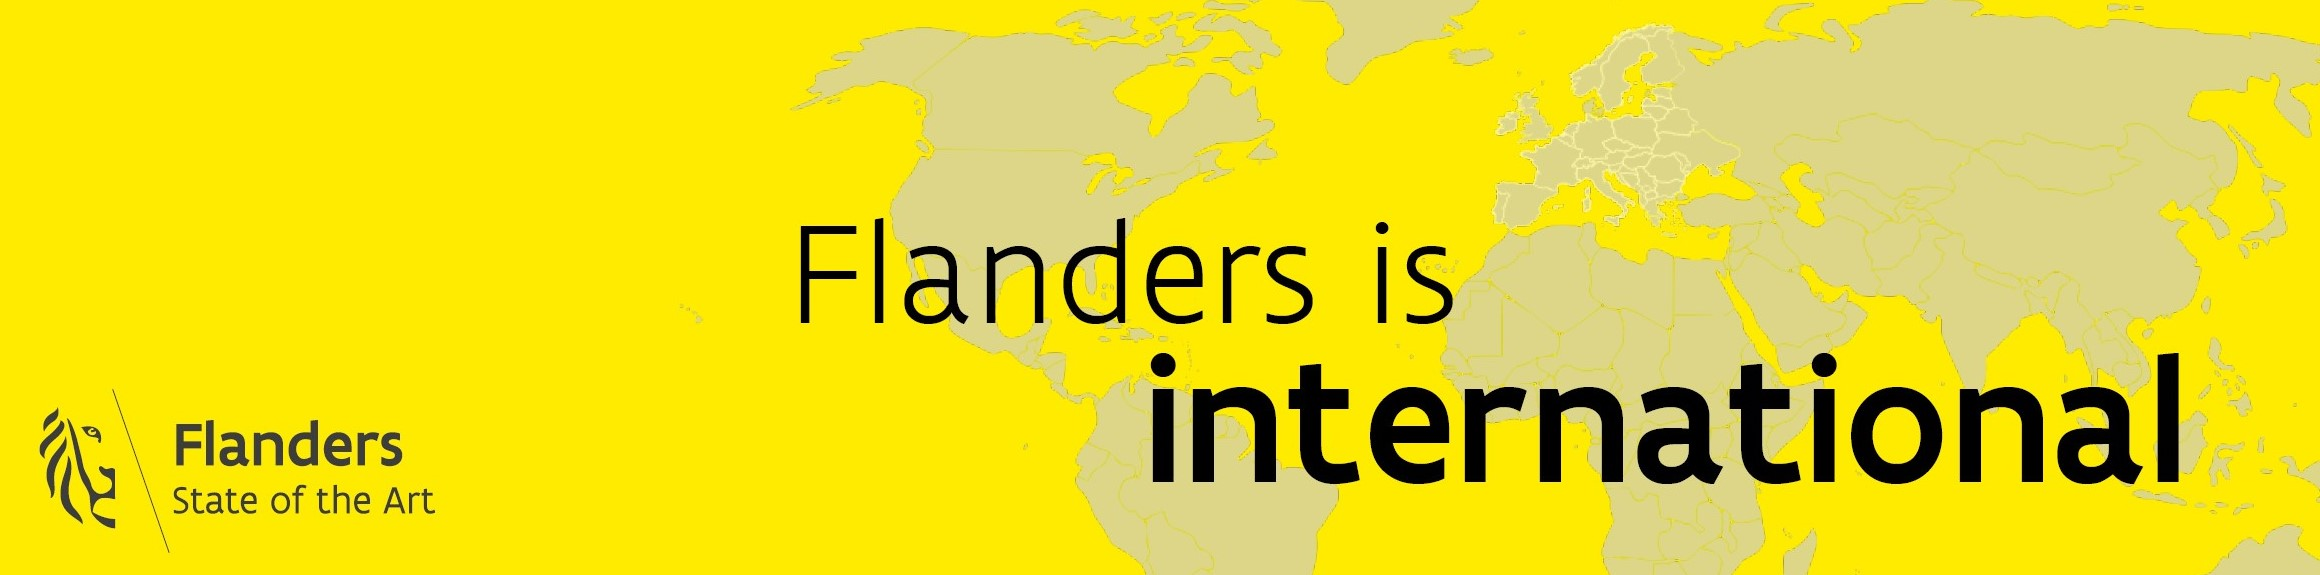 Flanders is international.jpg